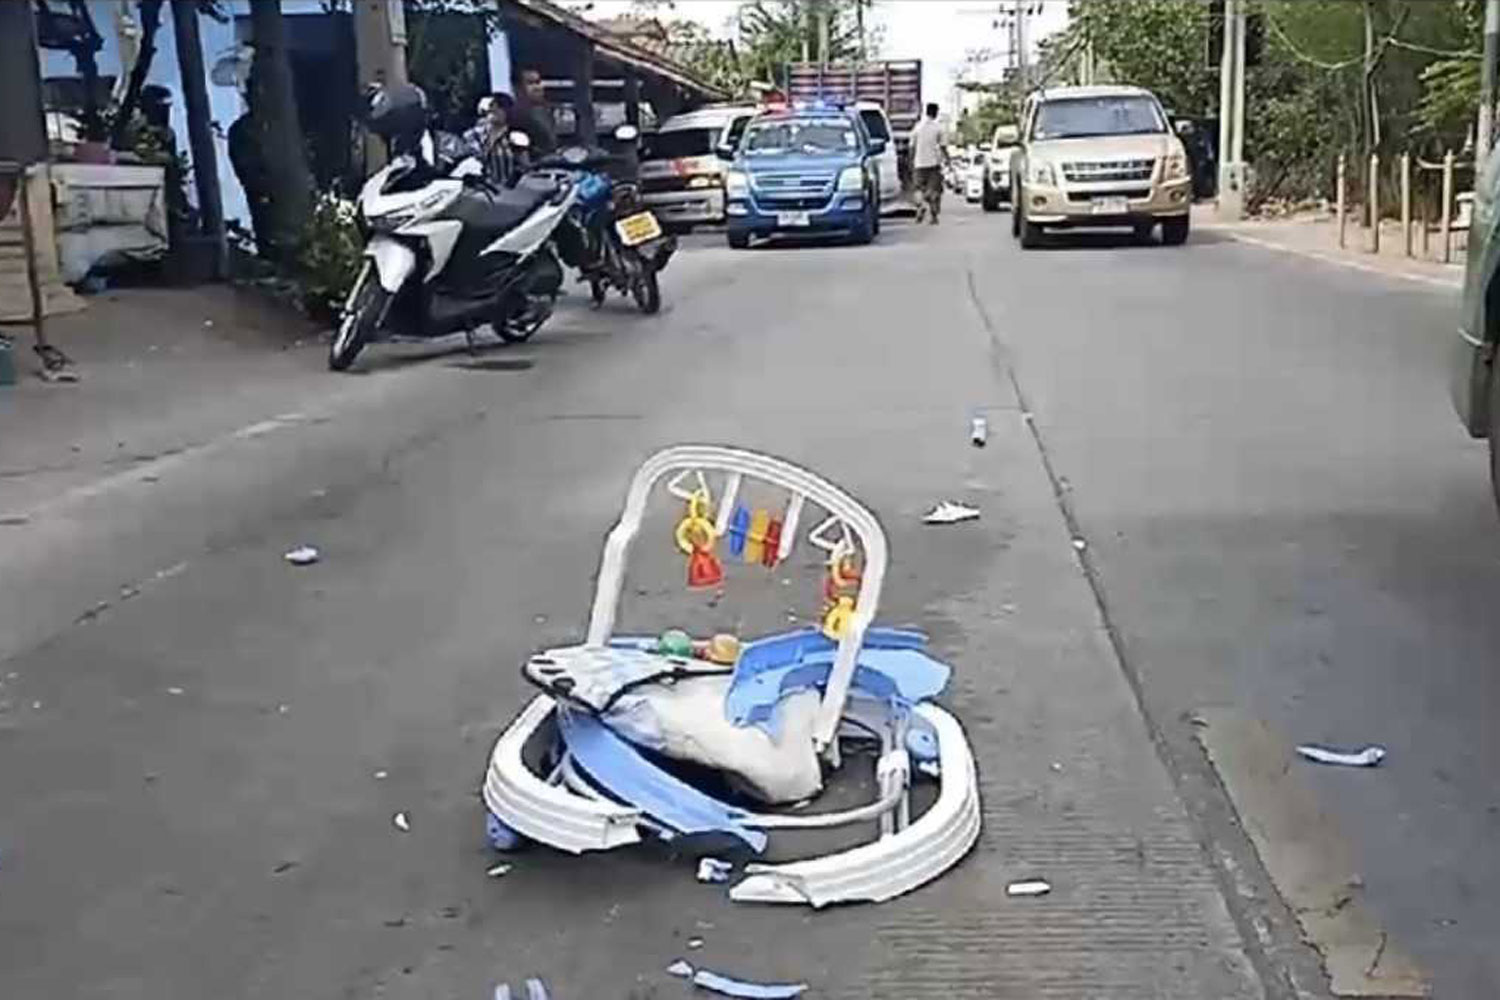 The crushed baby walker rests on the road after it was run over by a 10-wheeler in Phra Samut Chedi district of Samut Prakan on Thursday afternoon. (Photo by Sutthiwit Chayutworakan)